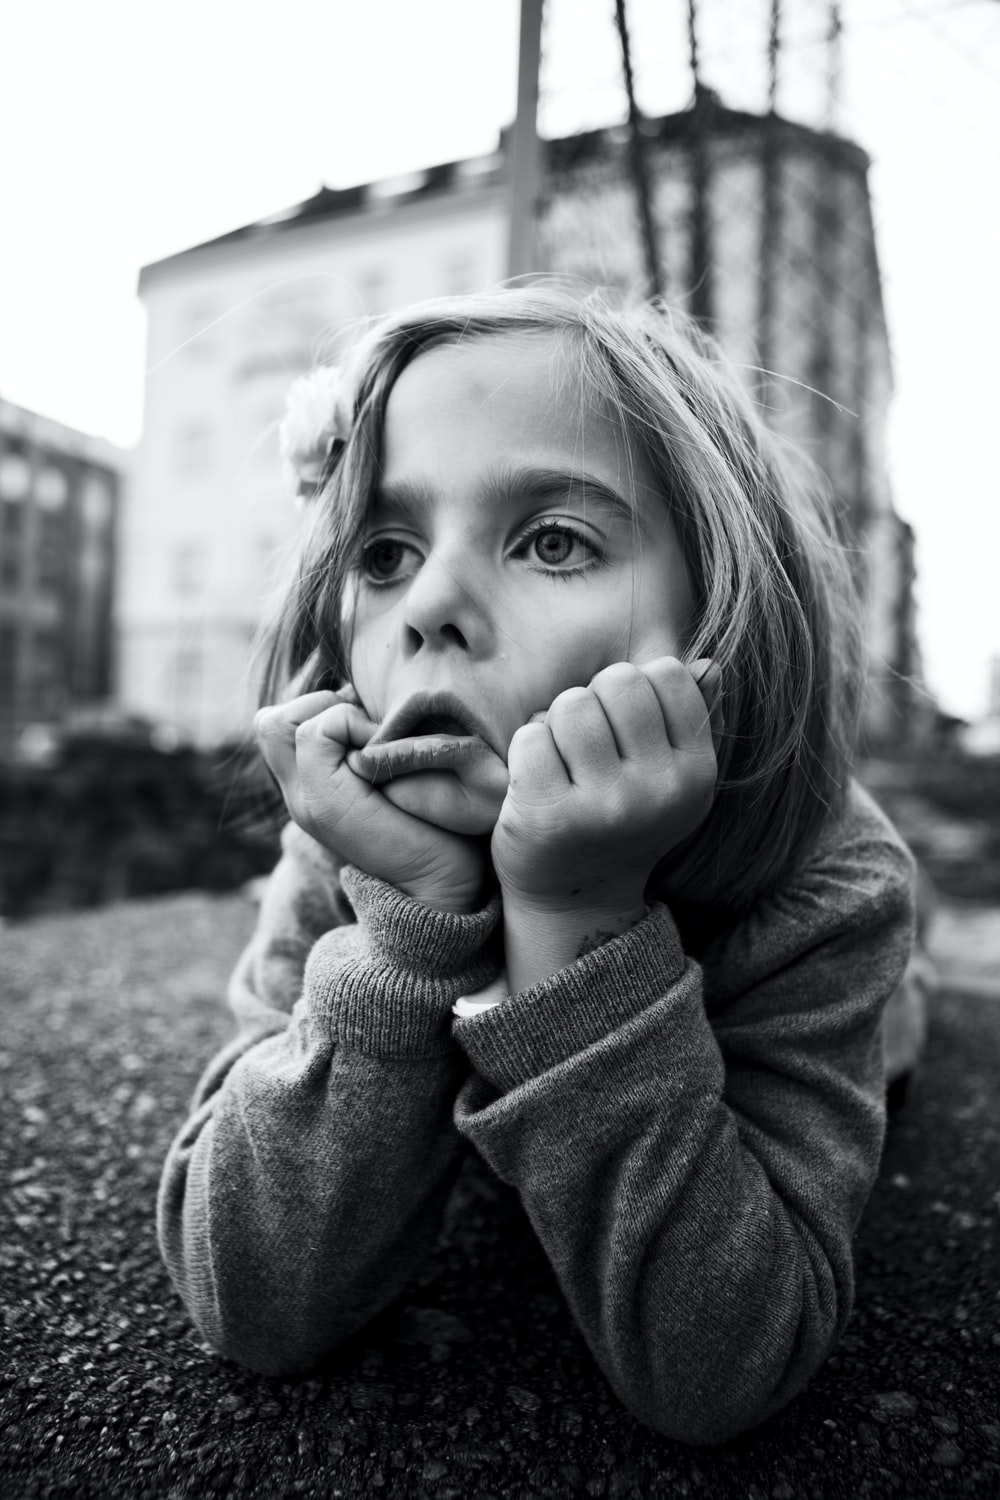 grayscale photo of girl doing face palm